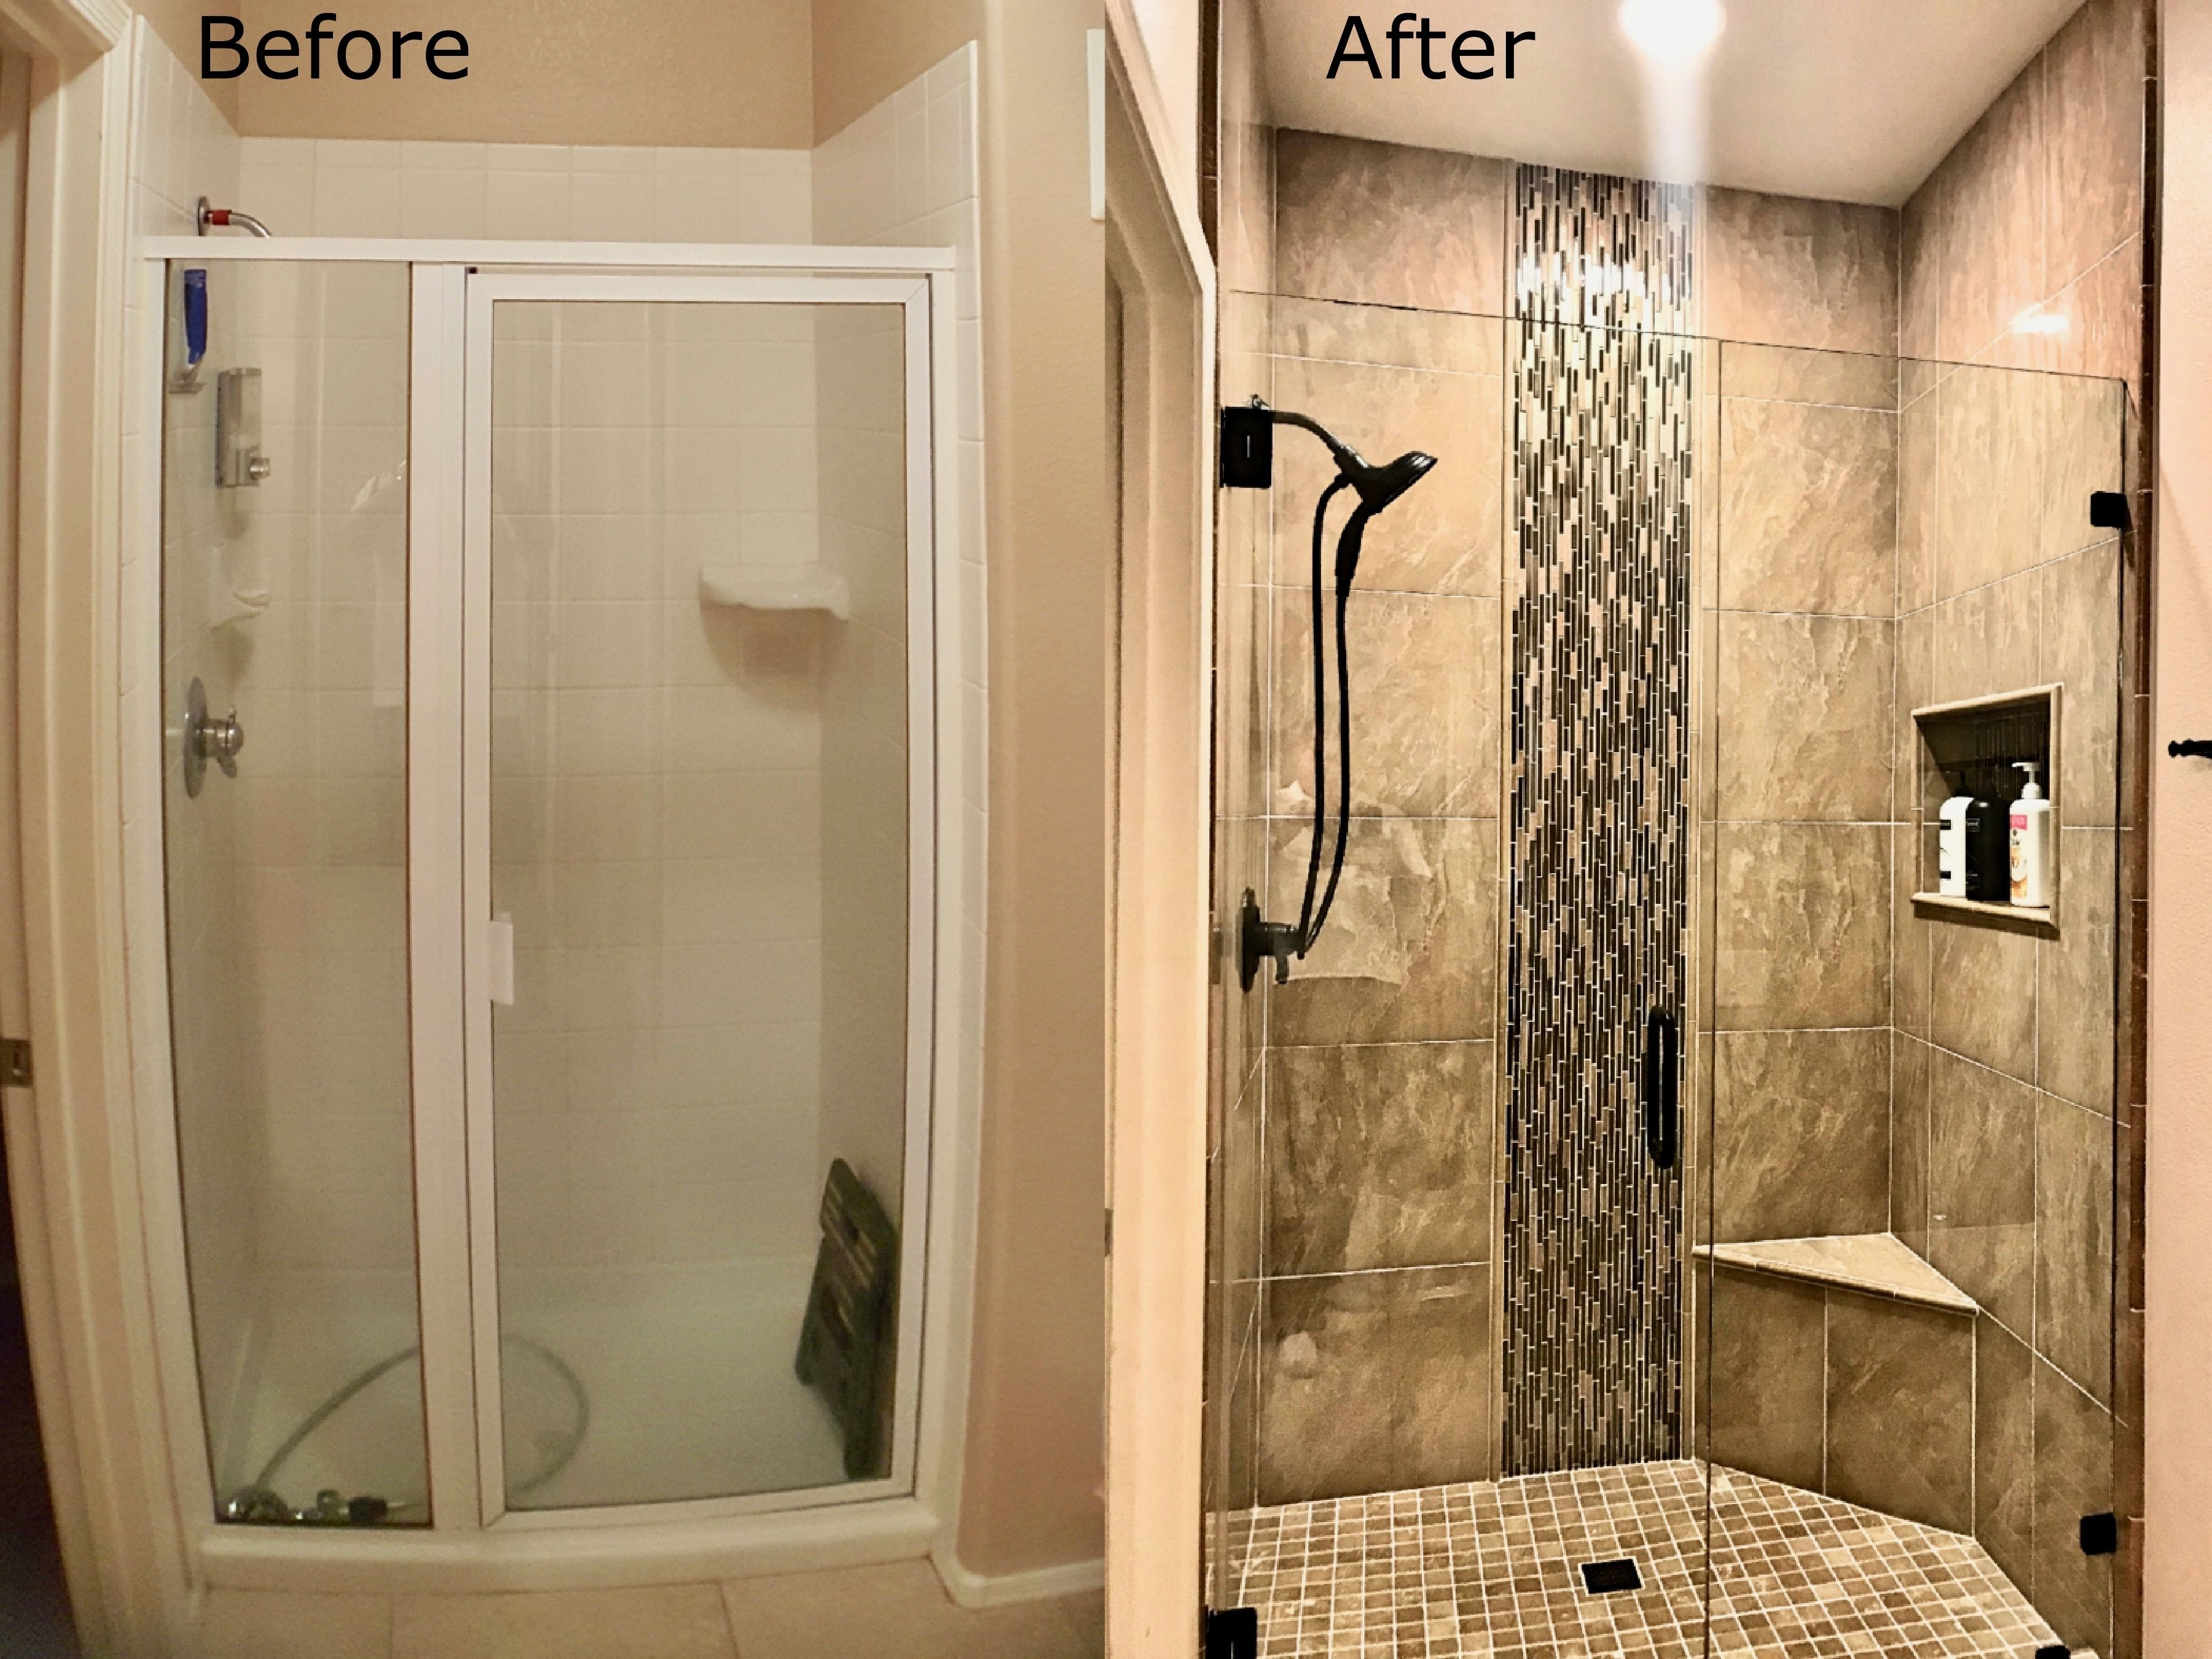 Shower Remodel Scottsdale Before And After In 2020 Shower Remodel Small Shower Remodel Bathroom Remodel Shower